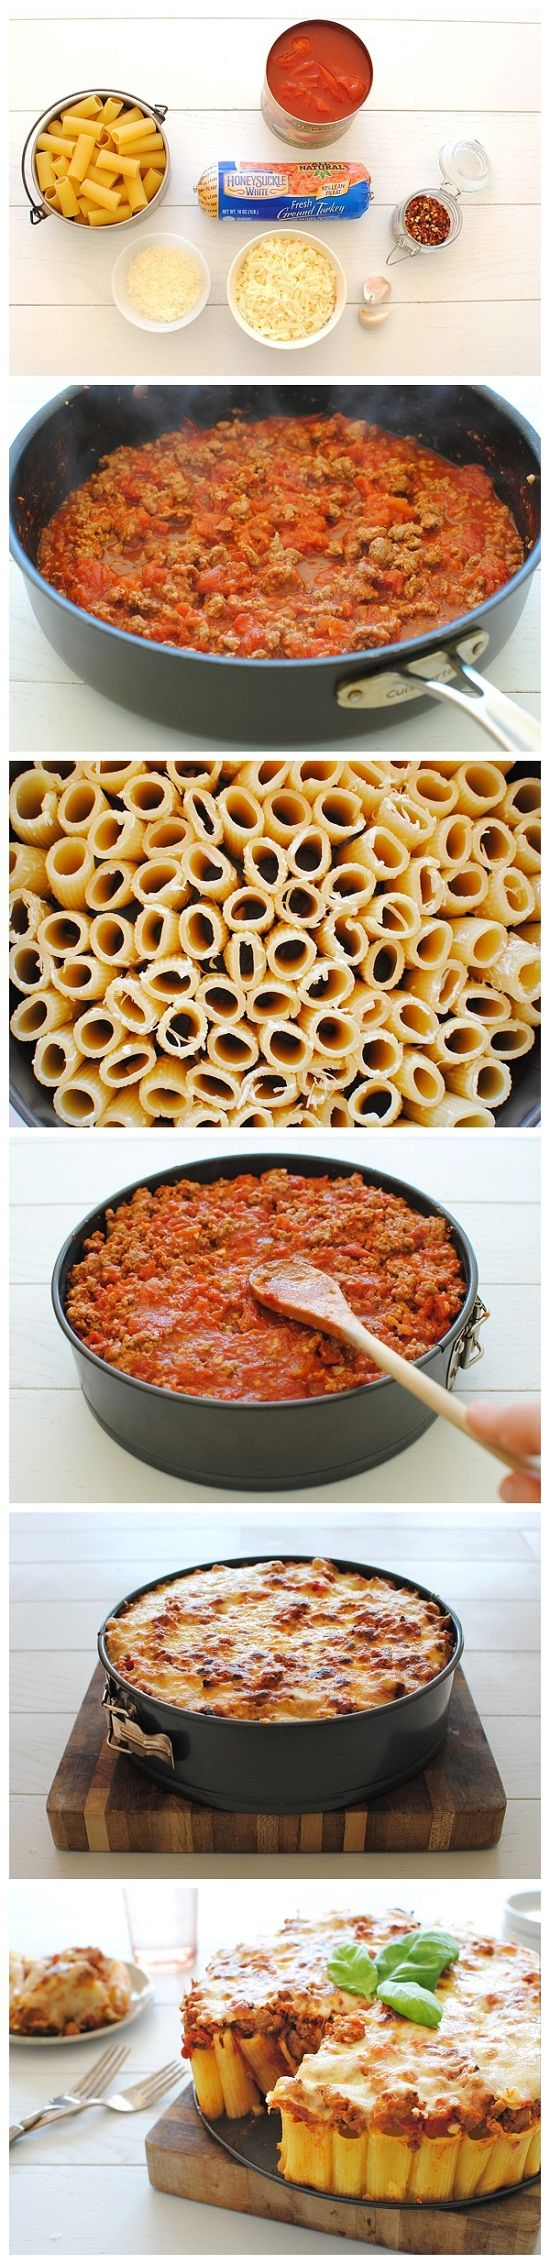 Rigatoni Pasta Pie..Must make!!!!!!!!!!